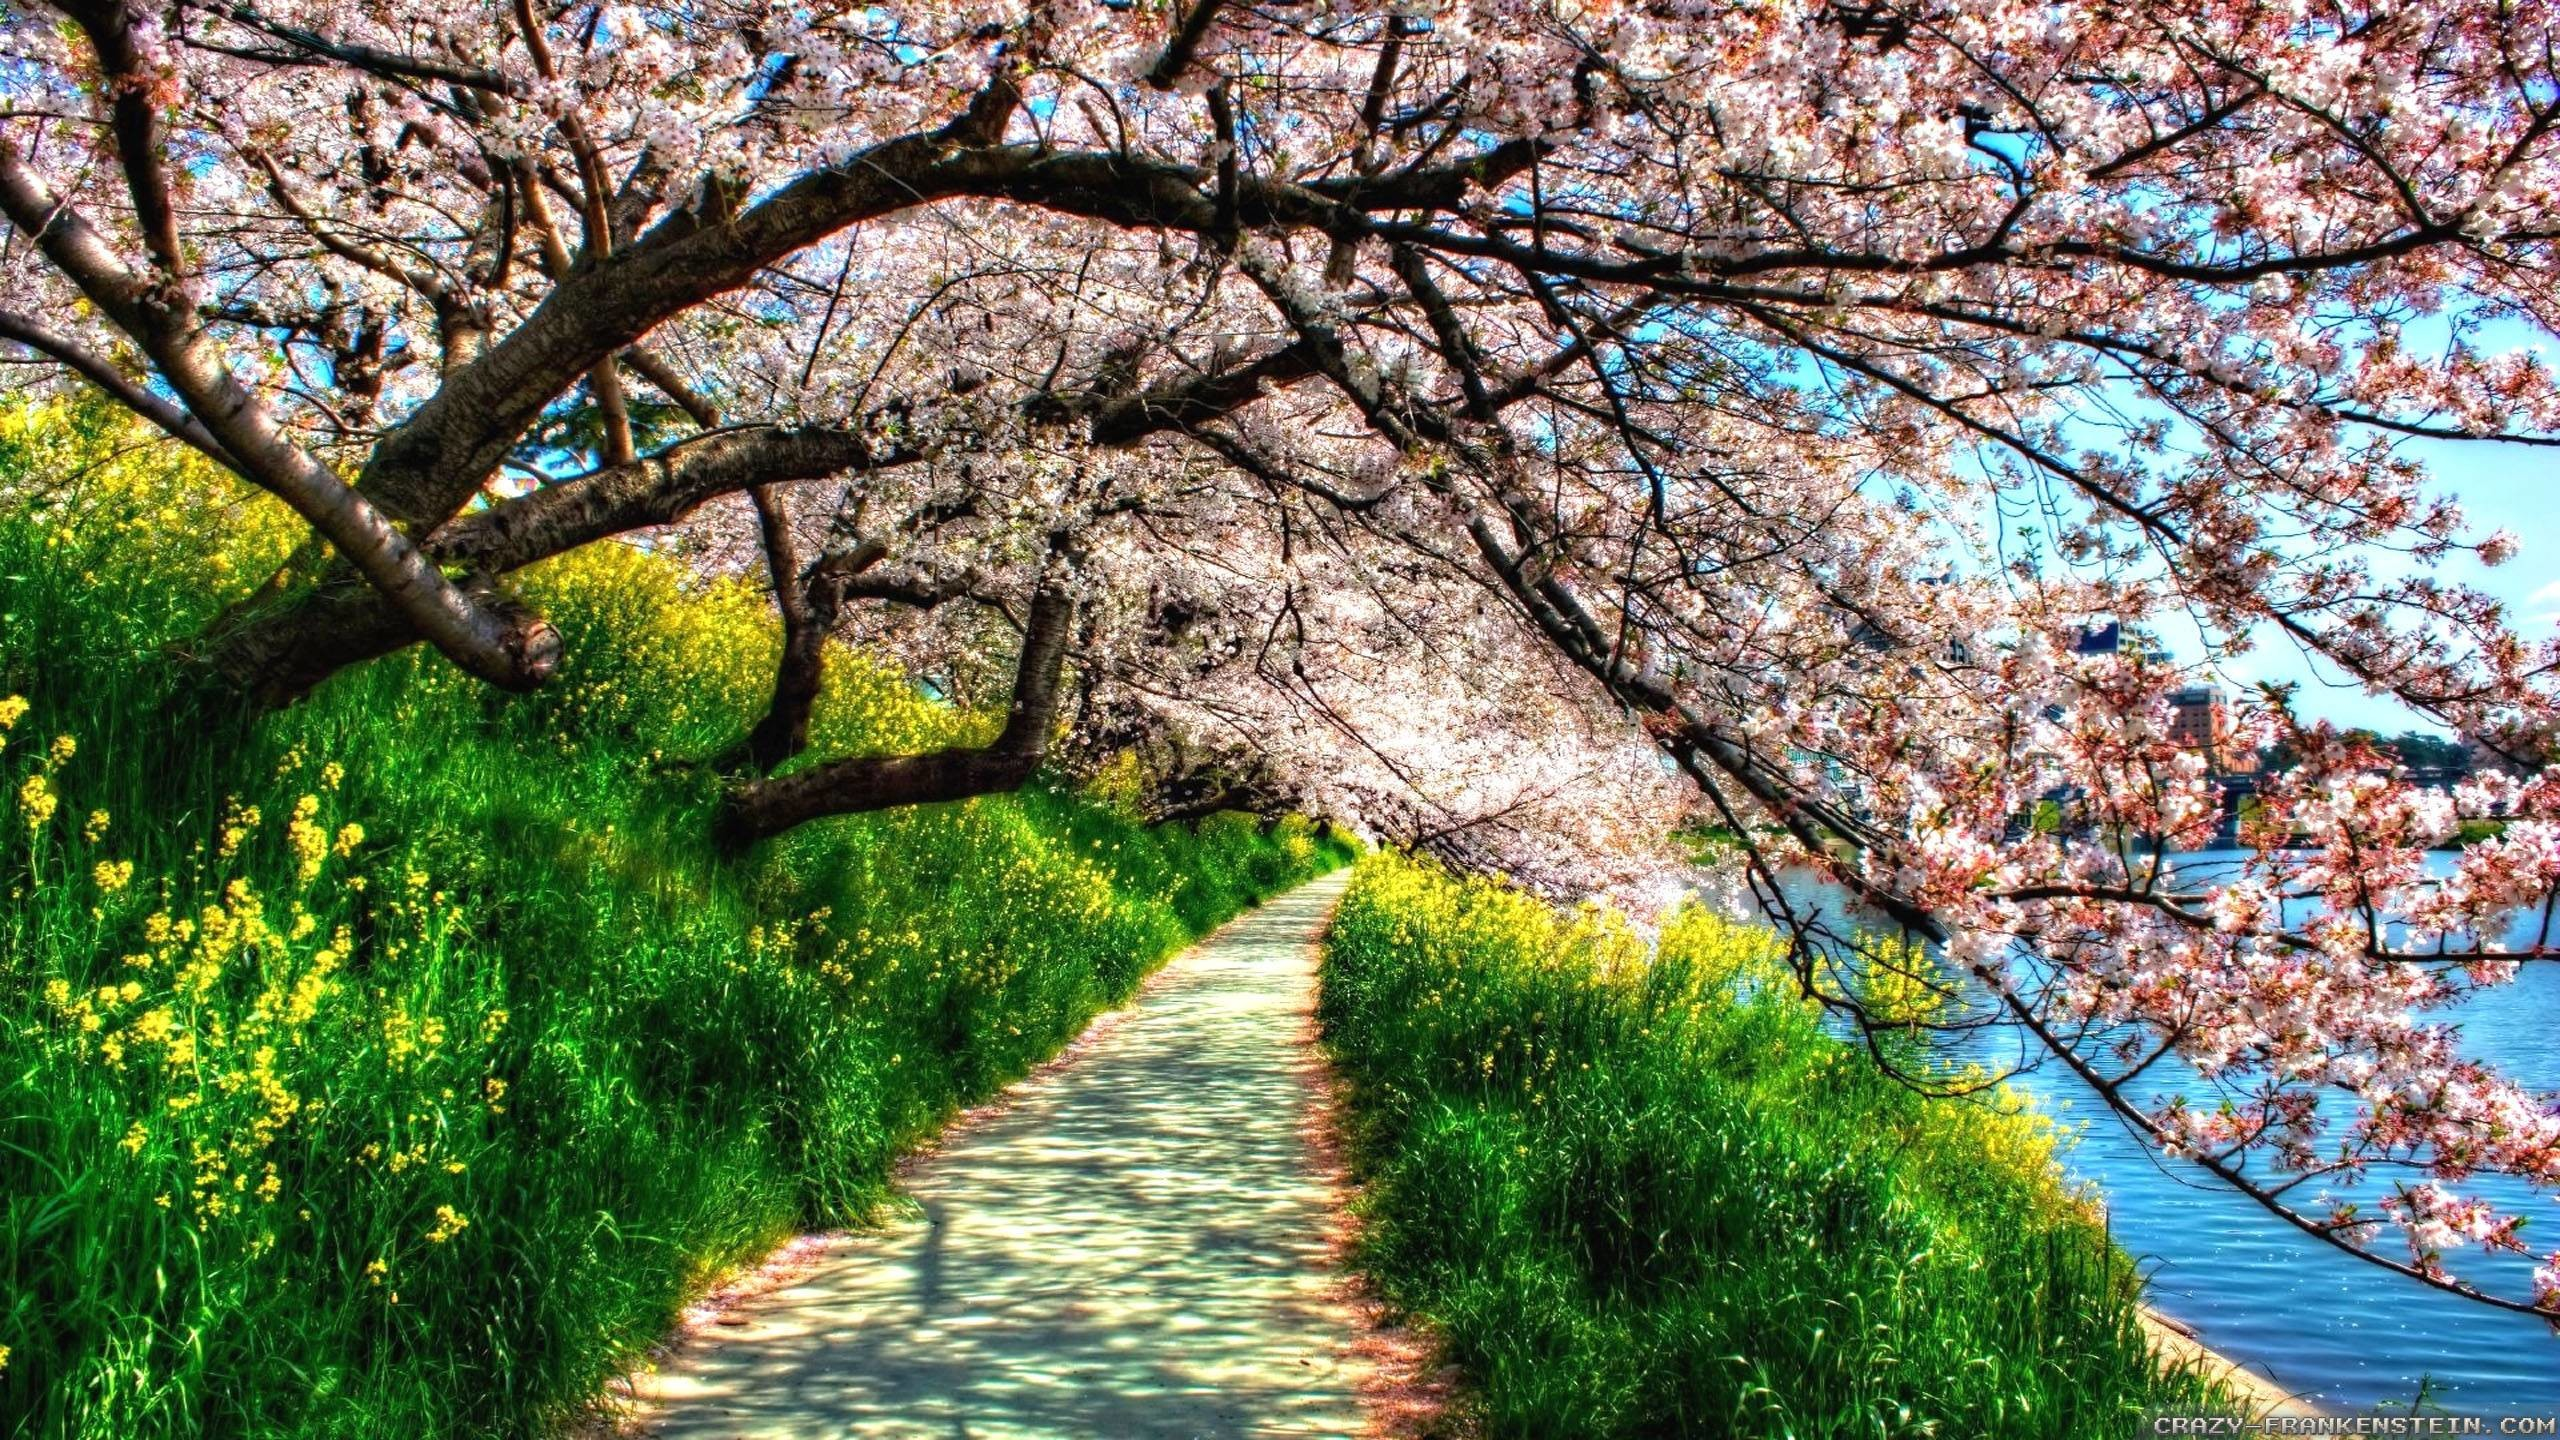 Spring Nature Images Wallpaper (63+ images)